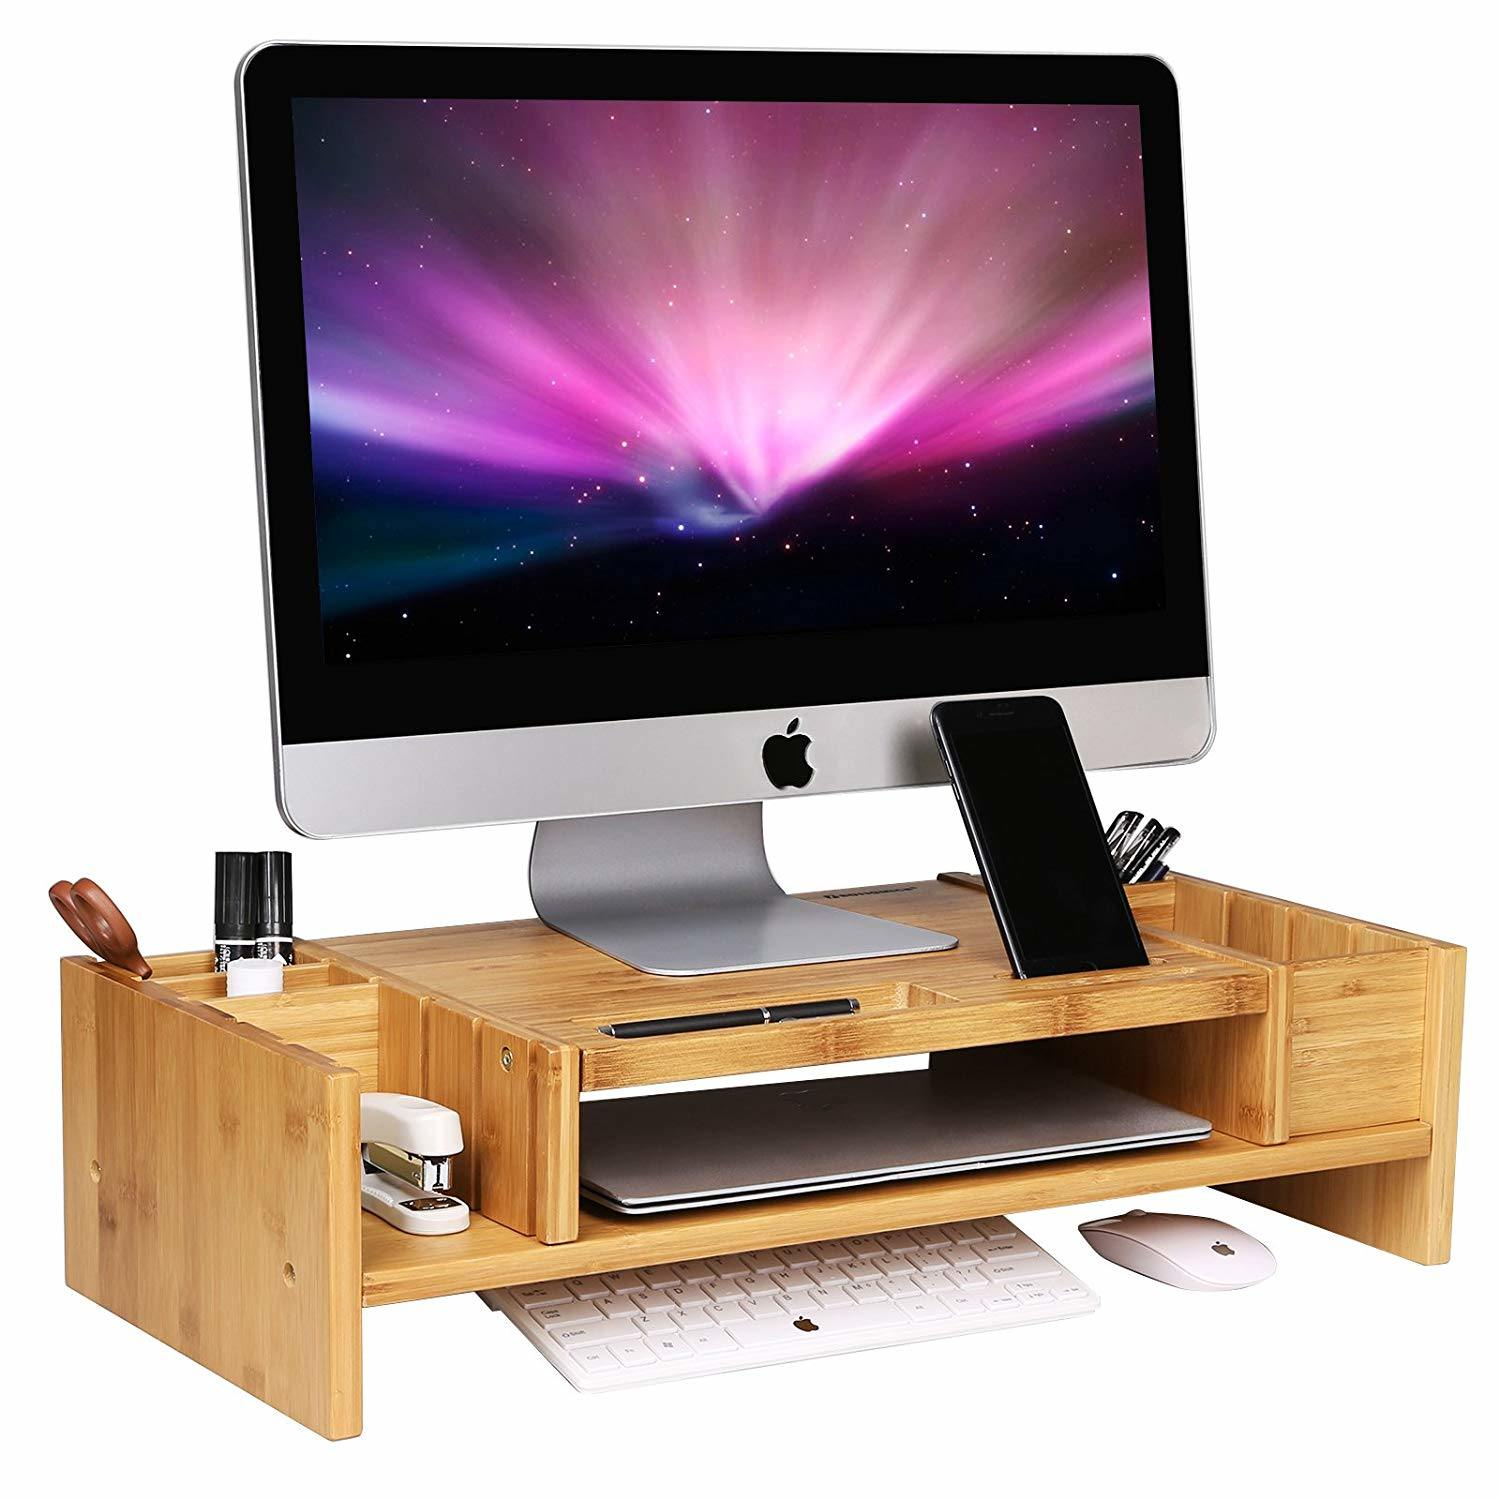 [Hot Item] Monitor Stand Riser with Drawers, Sturdy Desk Organizer Laptop  Stand with Keyboard Storage, Office Computer